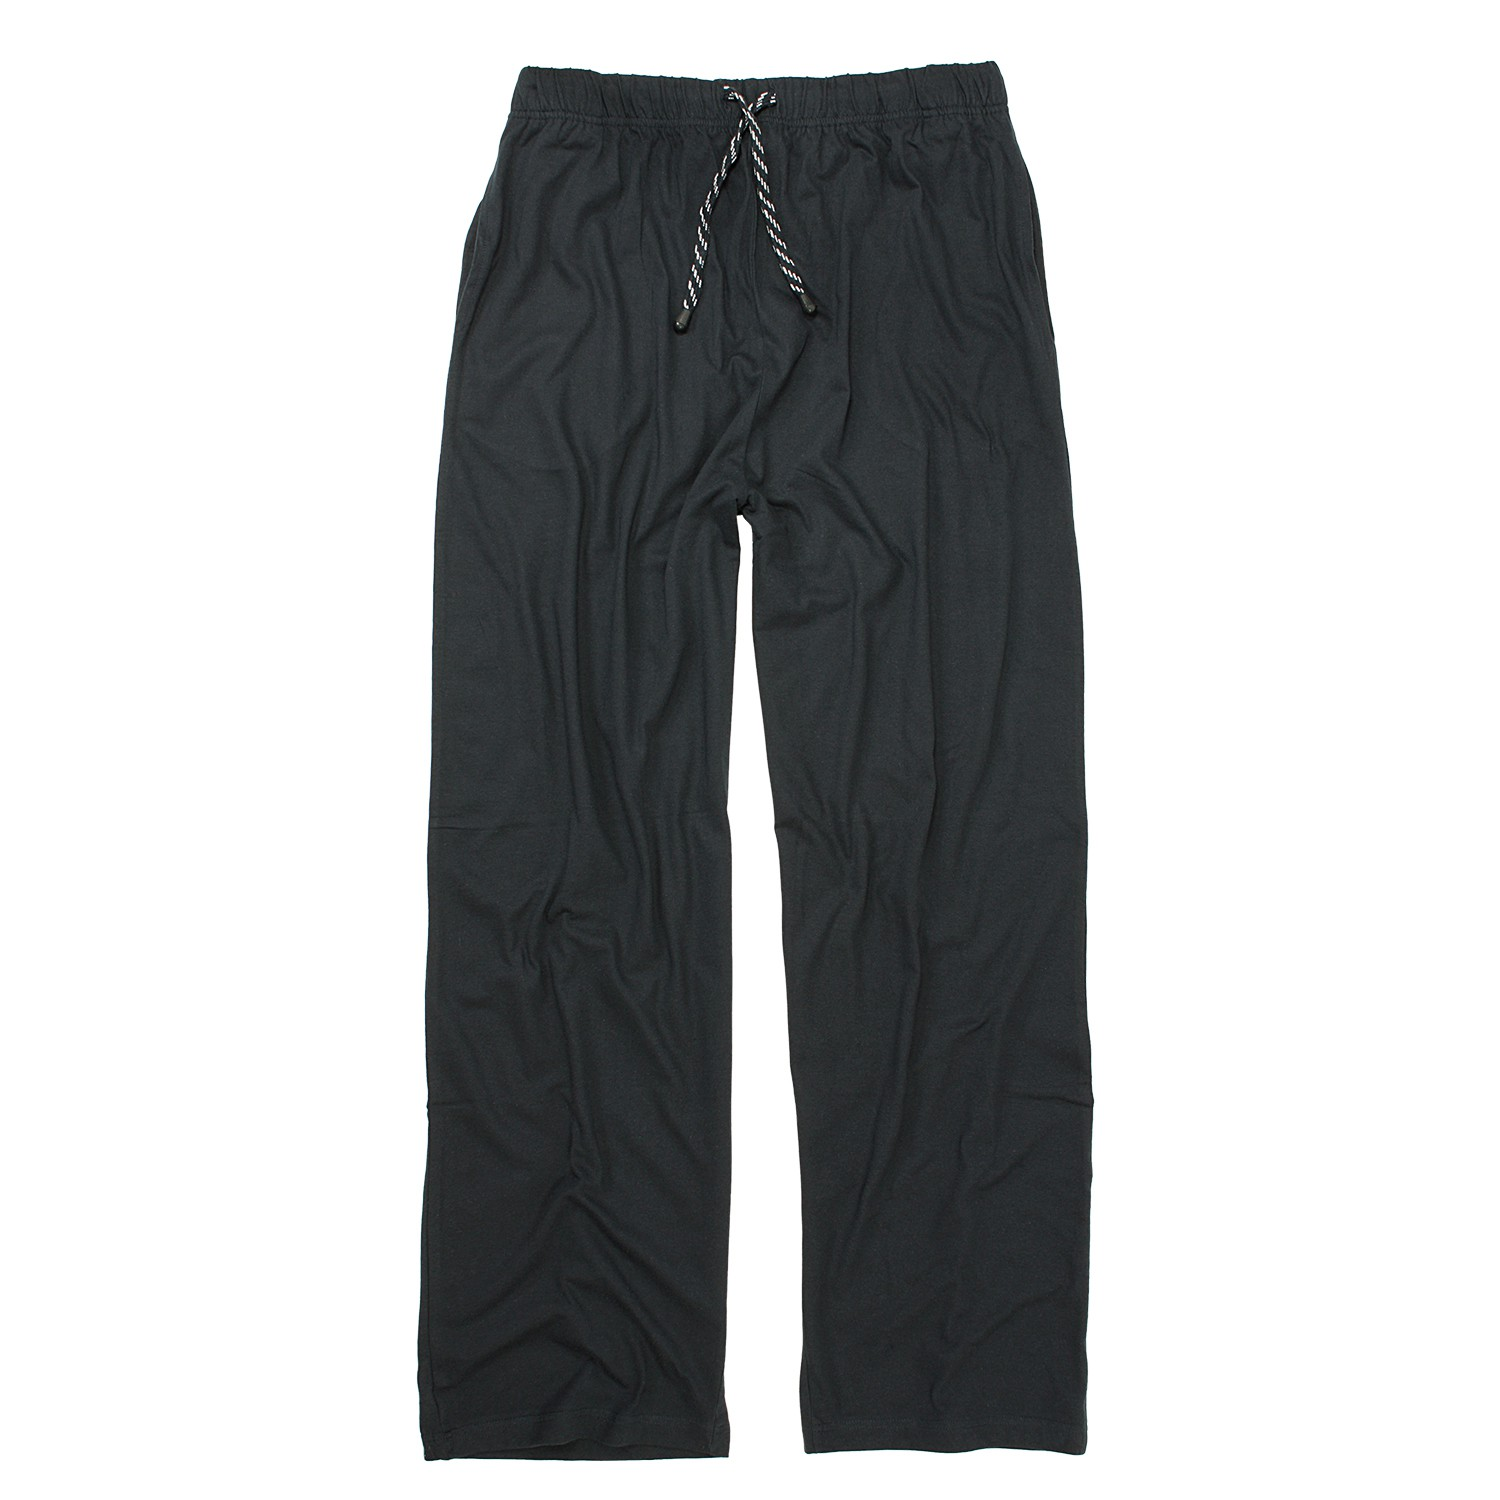 Detail Image to Long pyjama pants in blue by ADAMO in plus sizes up to 9XL